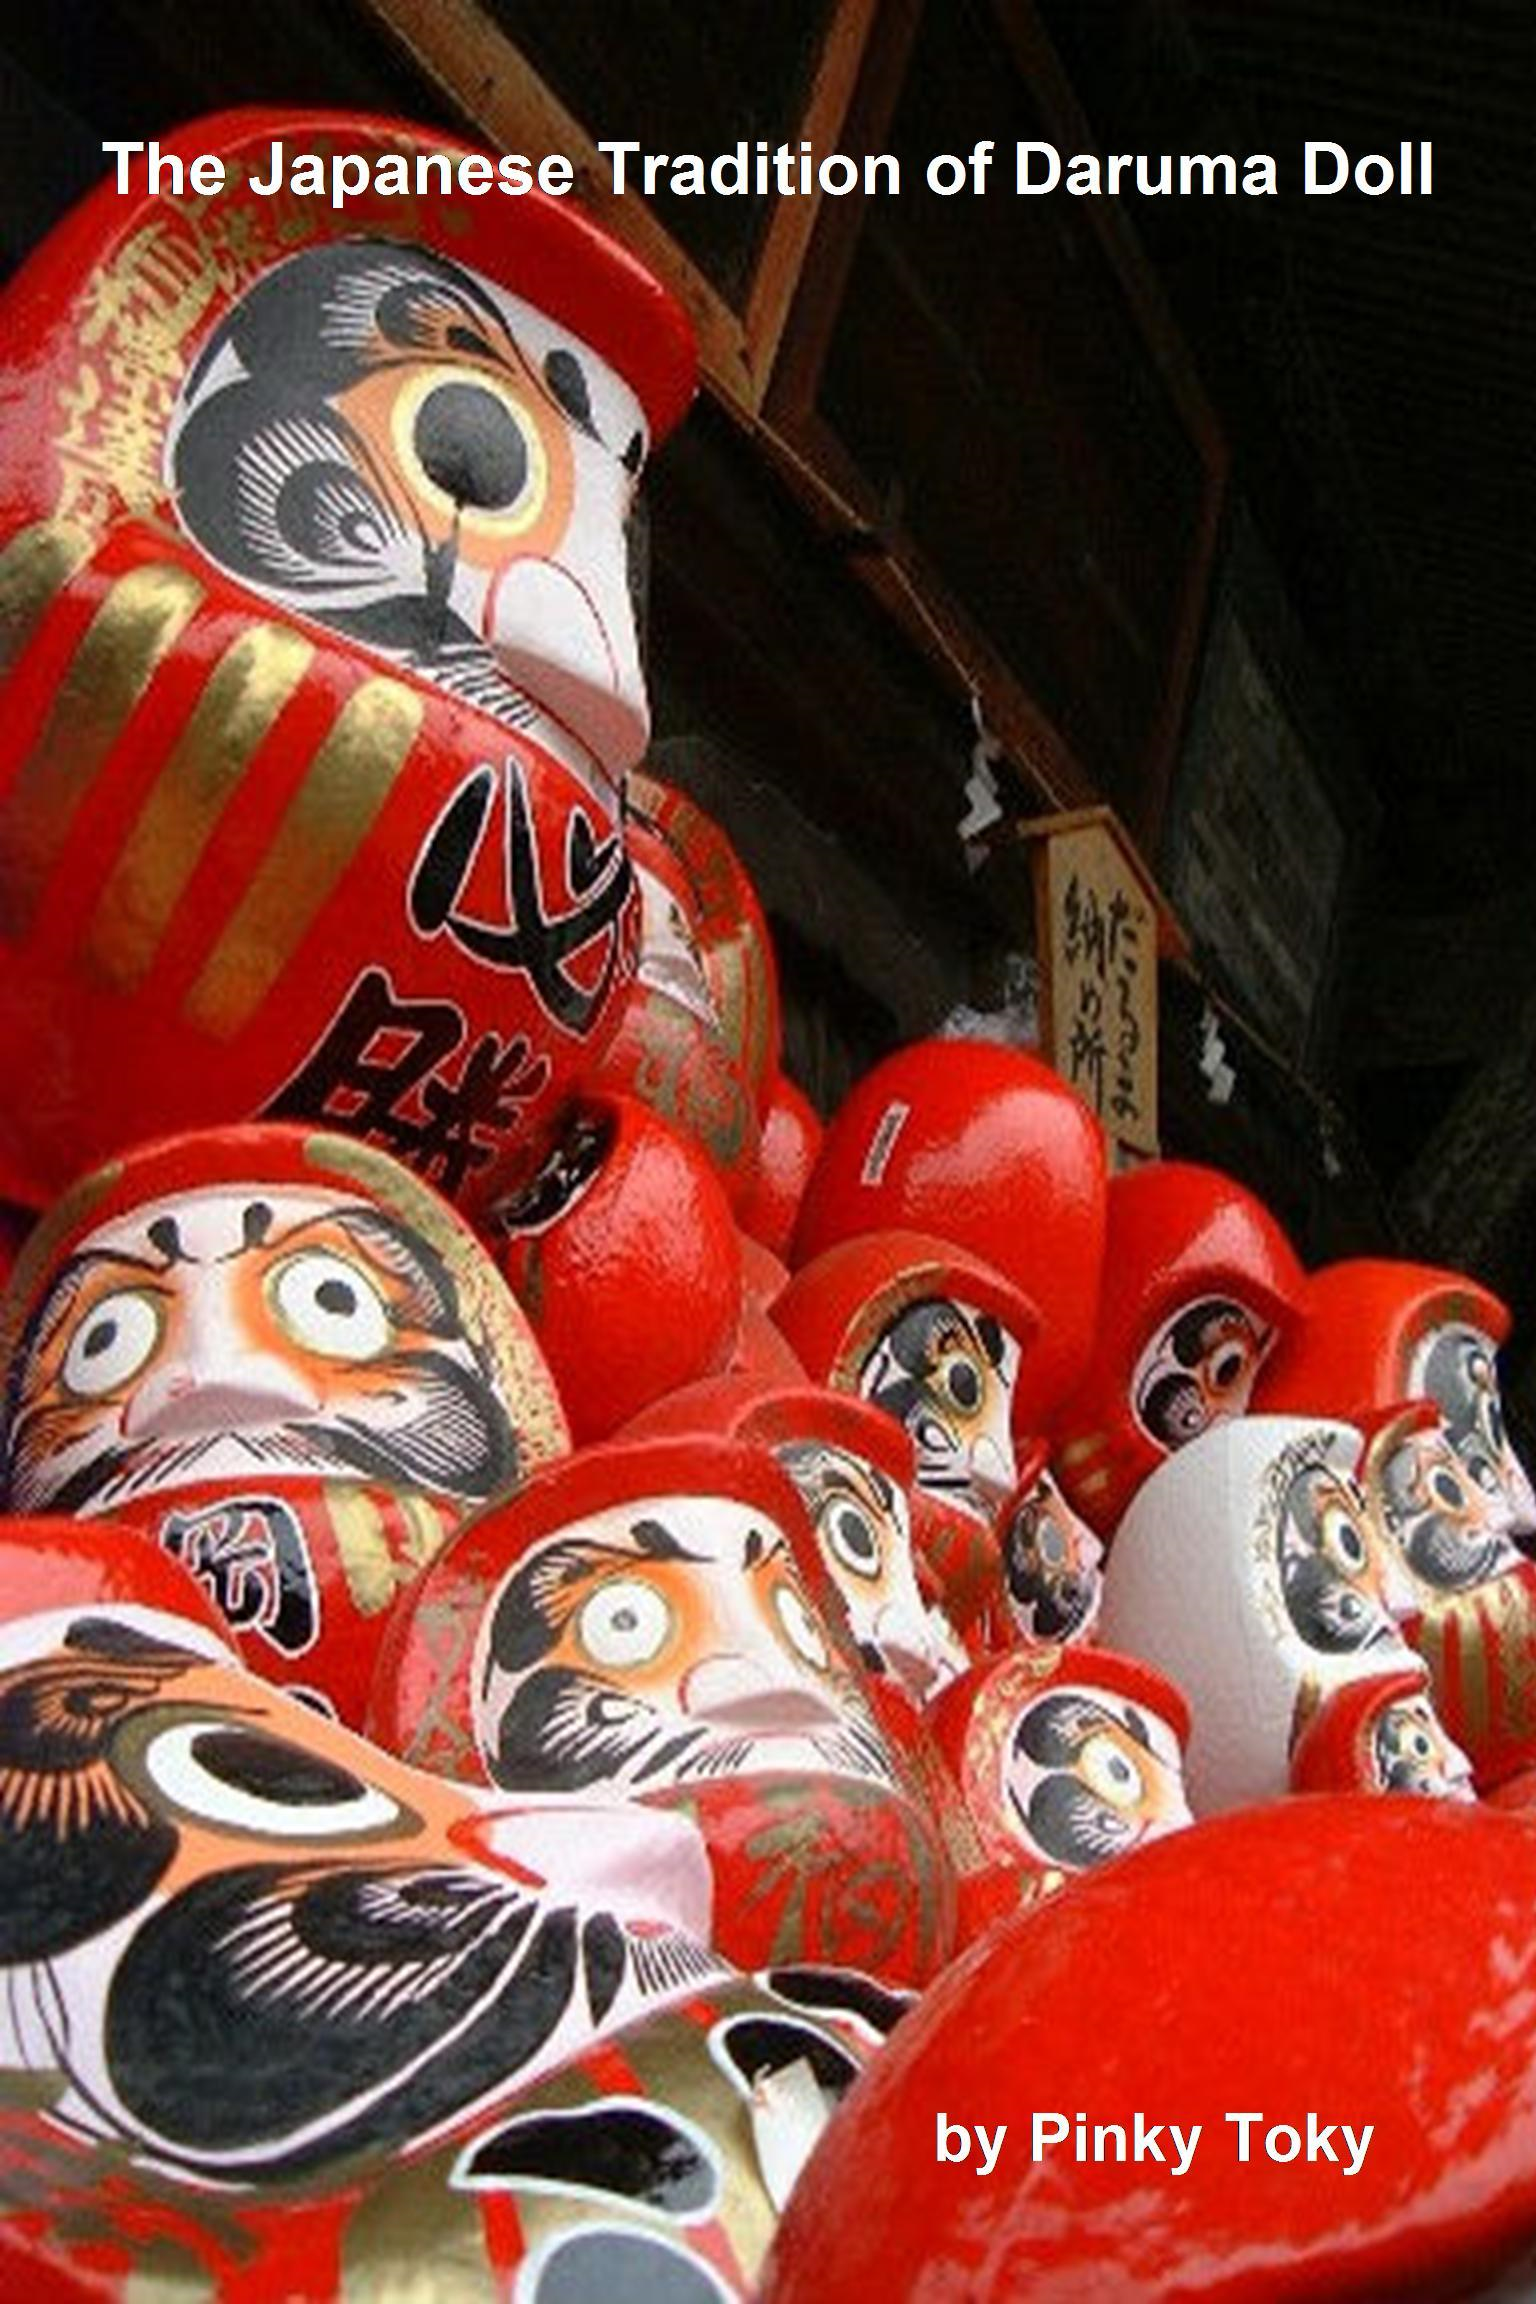 The Japanese Tradition of Daruma Doll